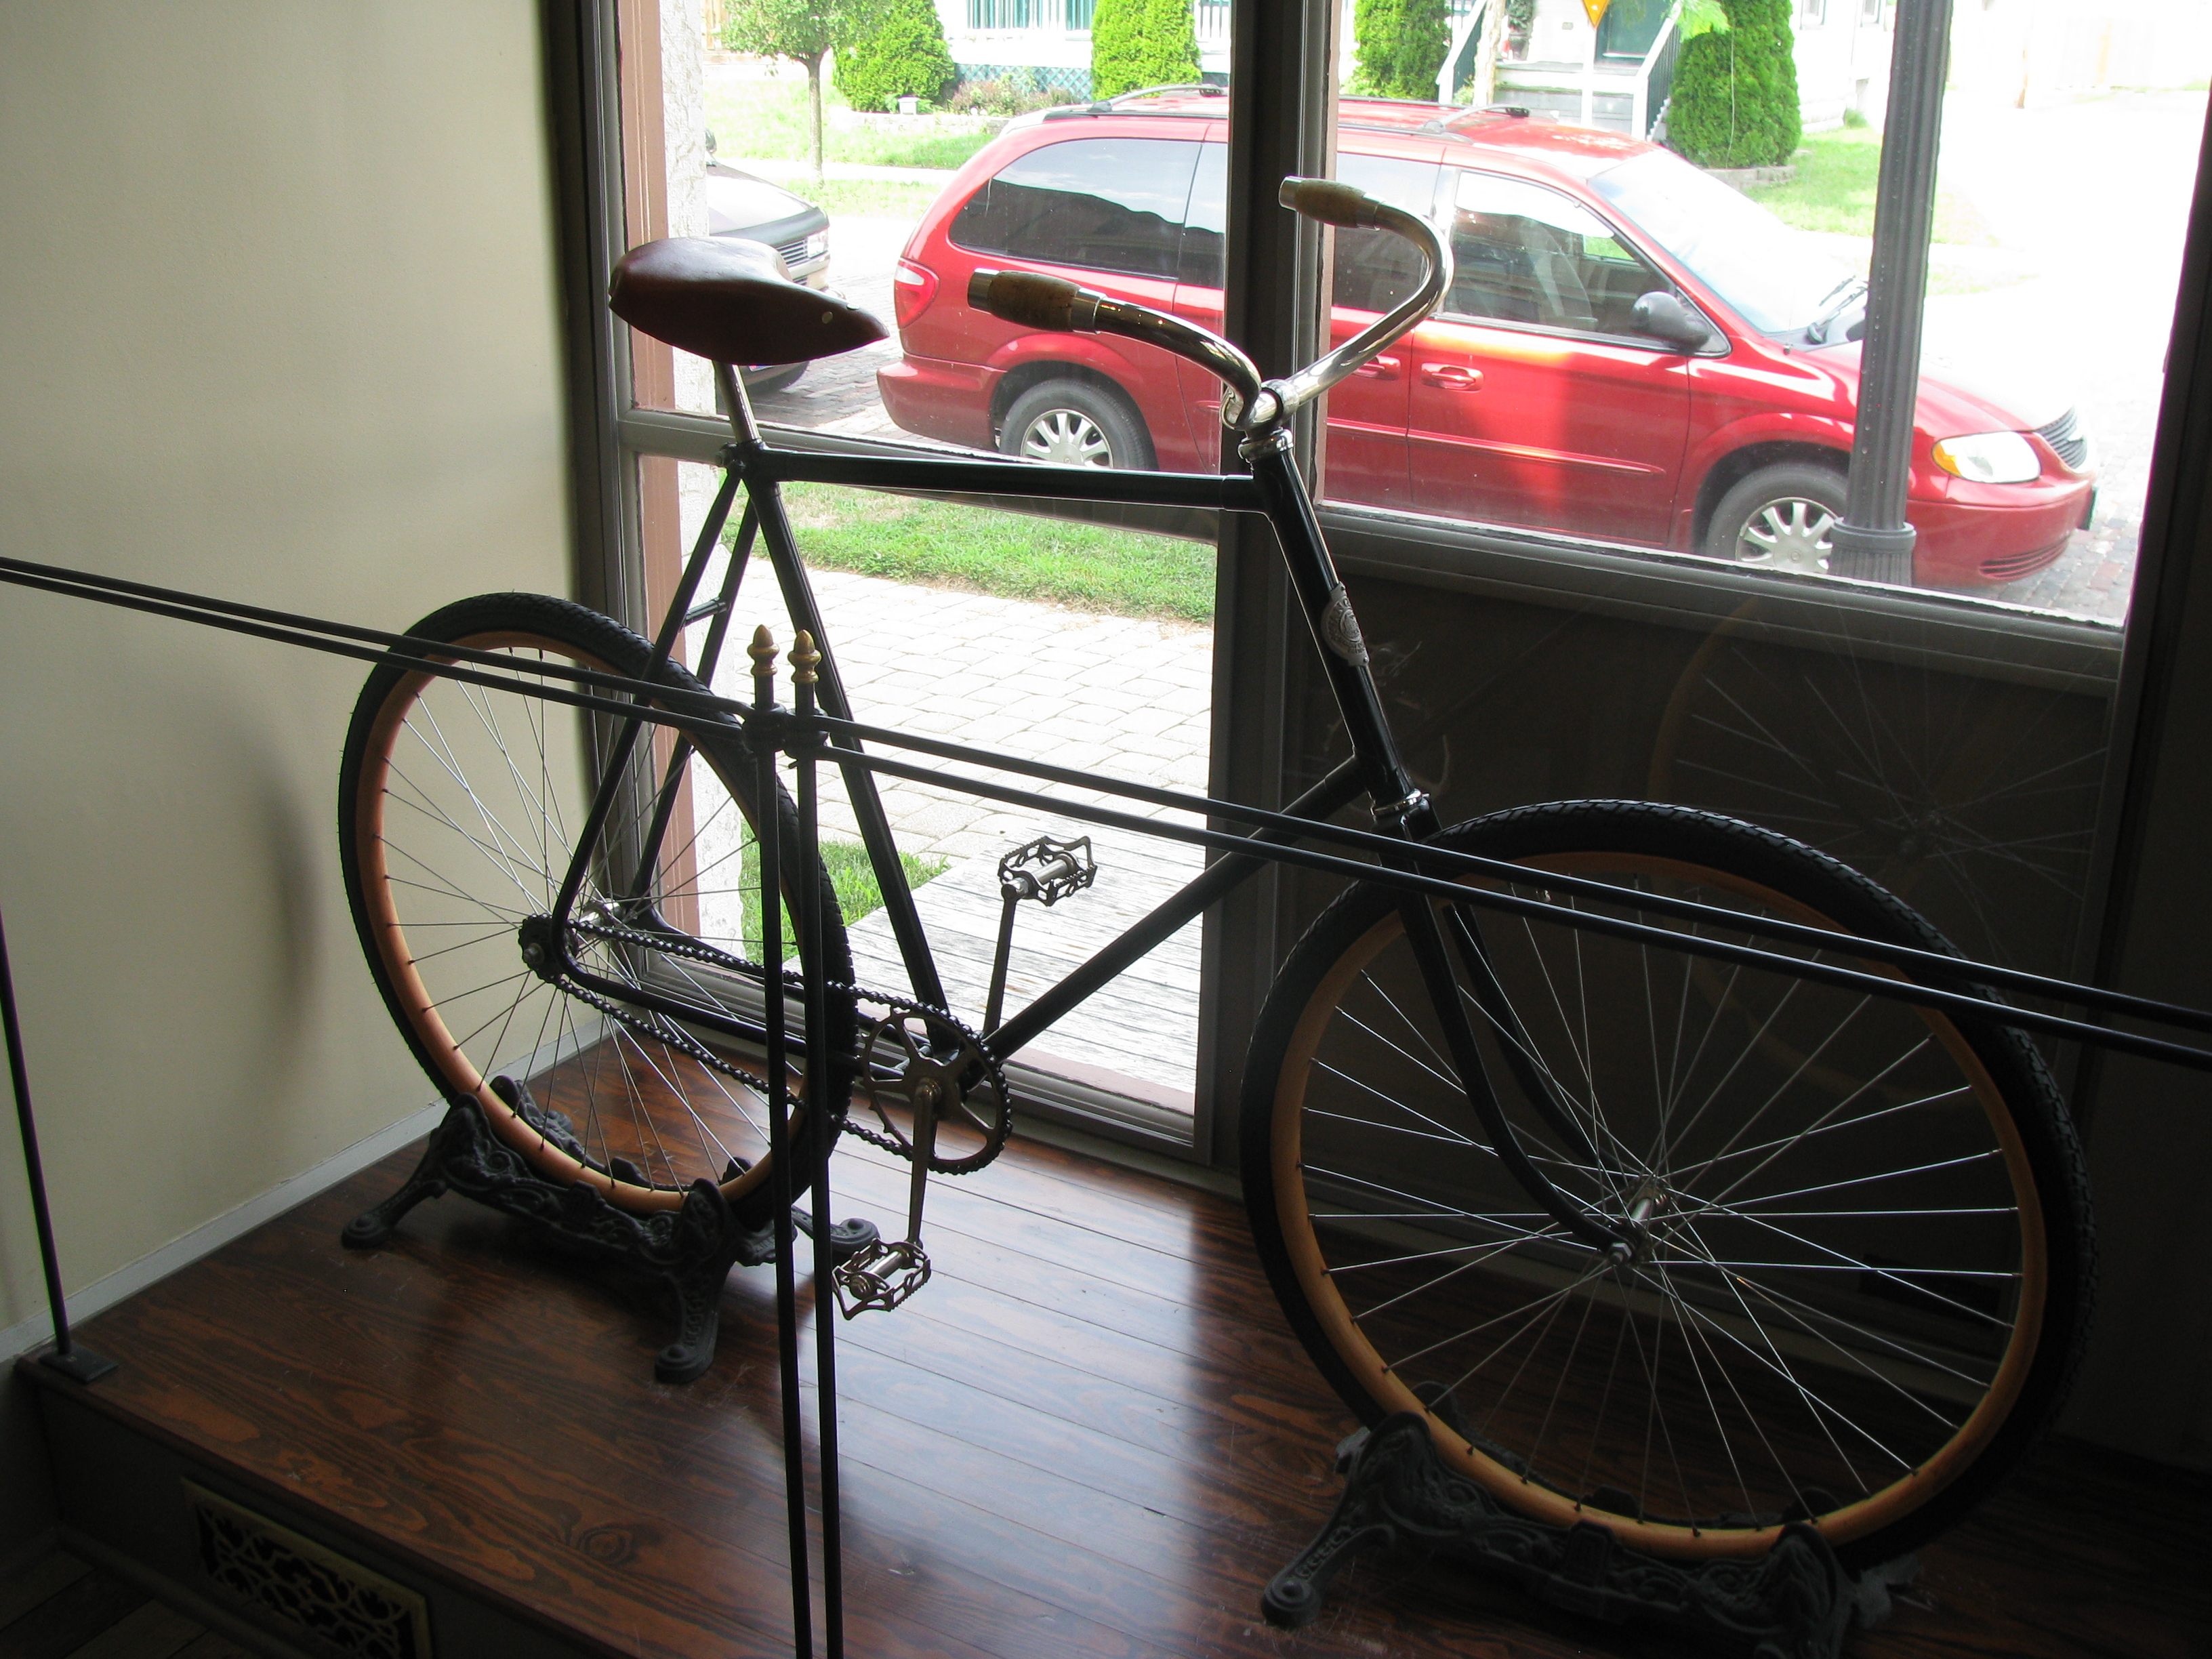 File Wright Brothers Bike At Front Window Jpg Wikimedia Commons